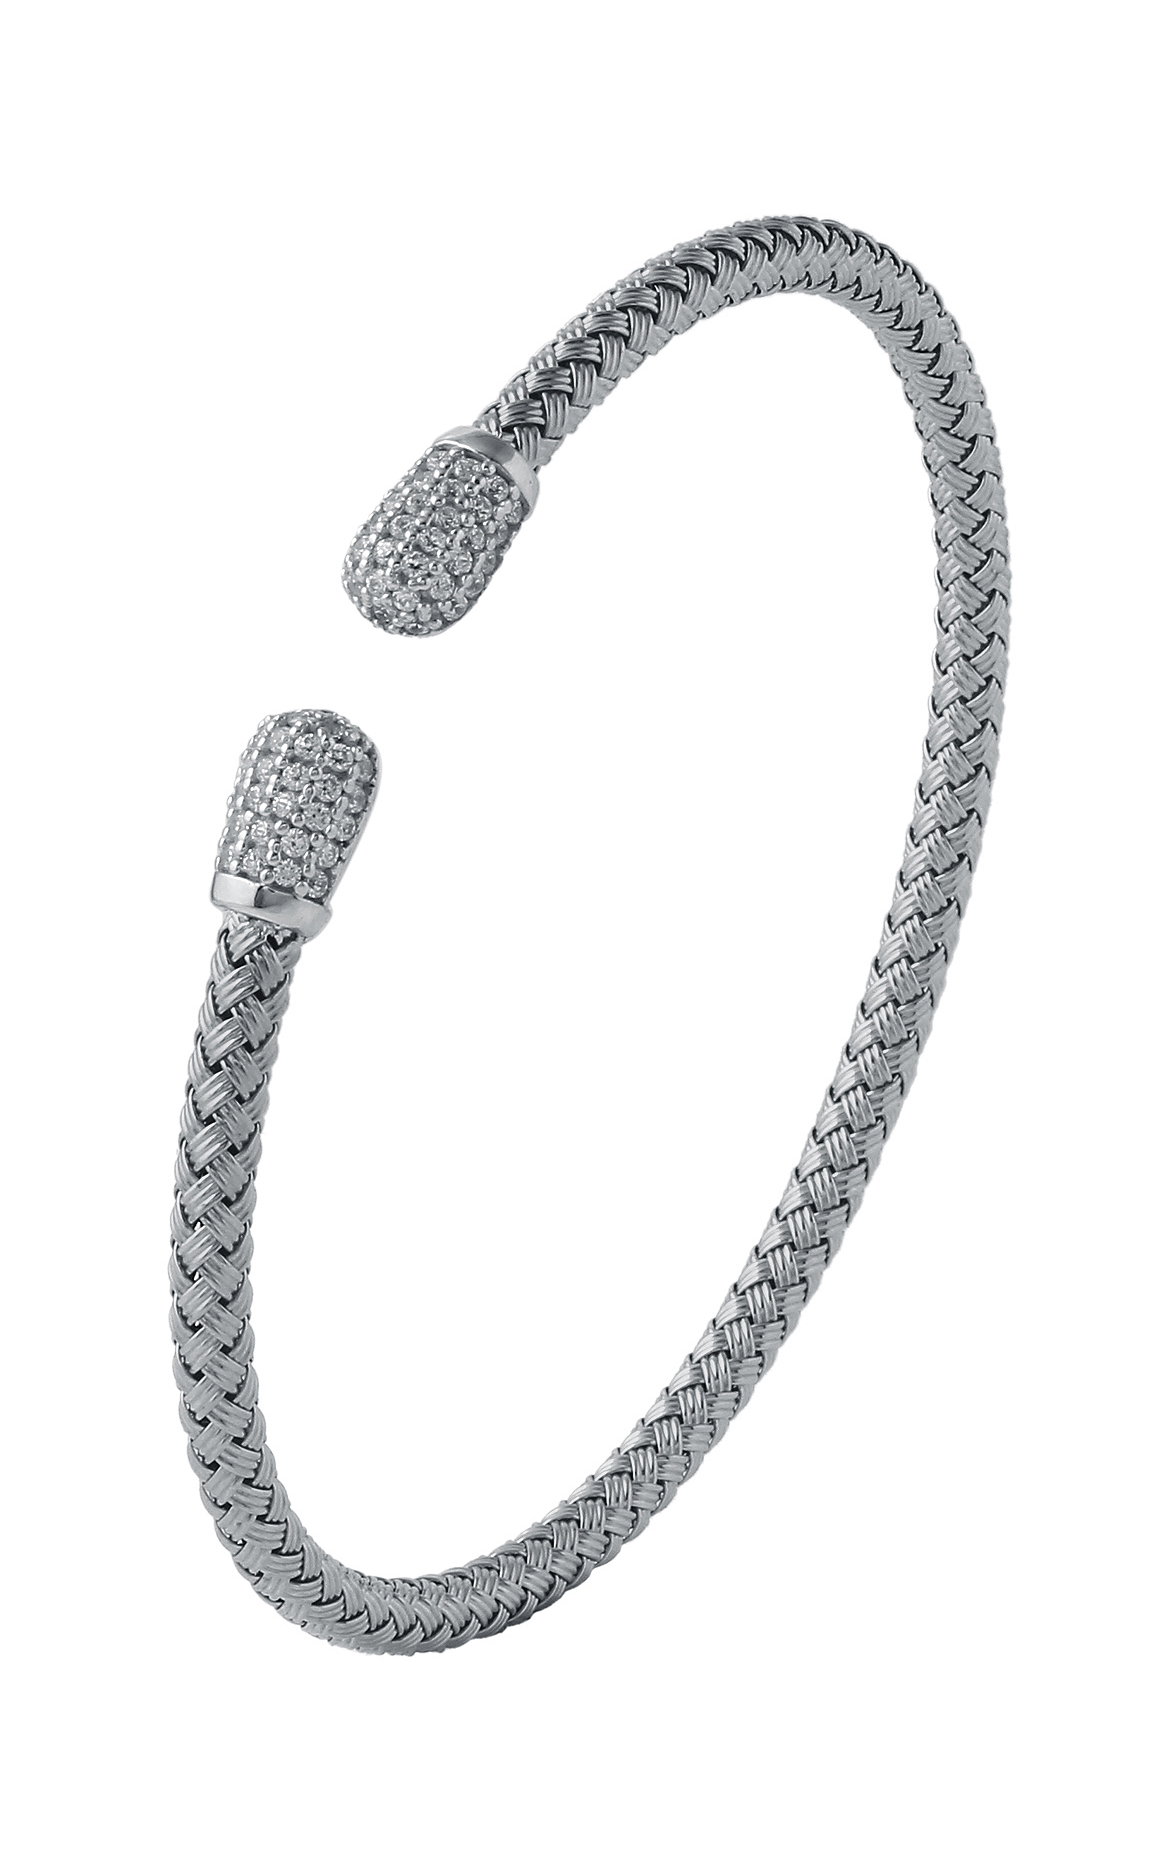 Charles Garnier Bracelets Bracelet Paolo Collection MLC8057WZ product image